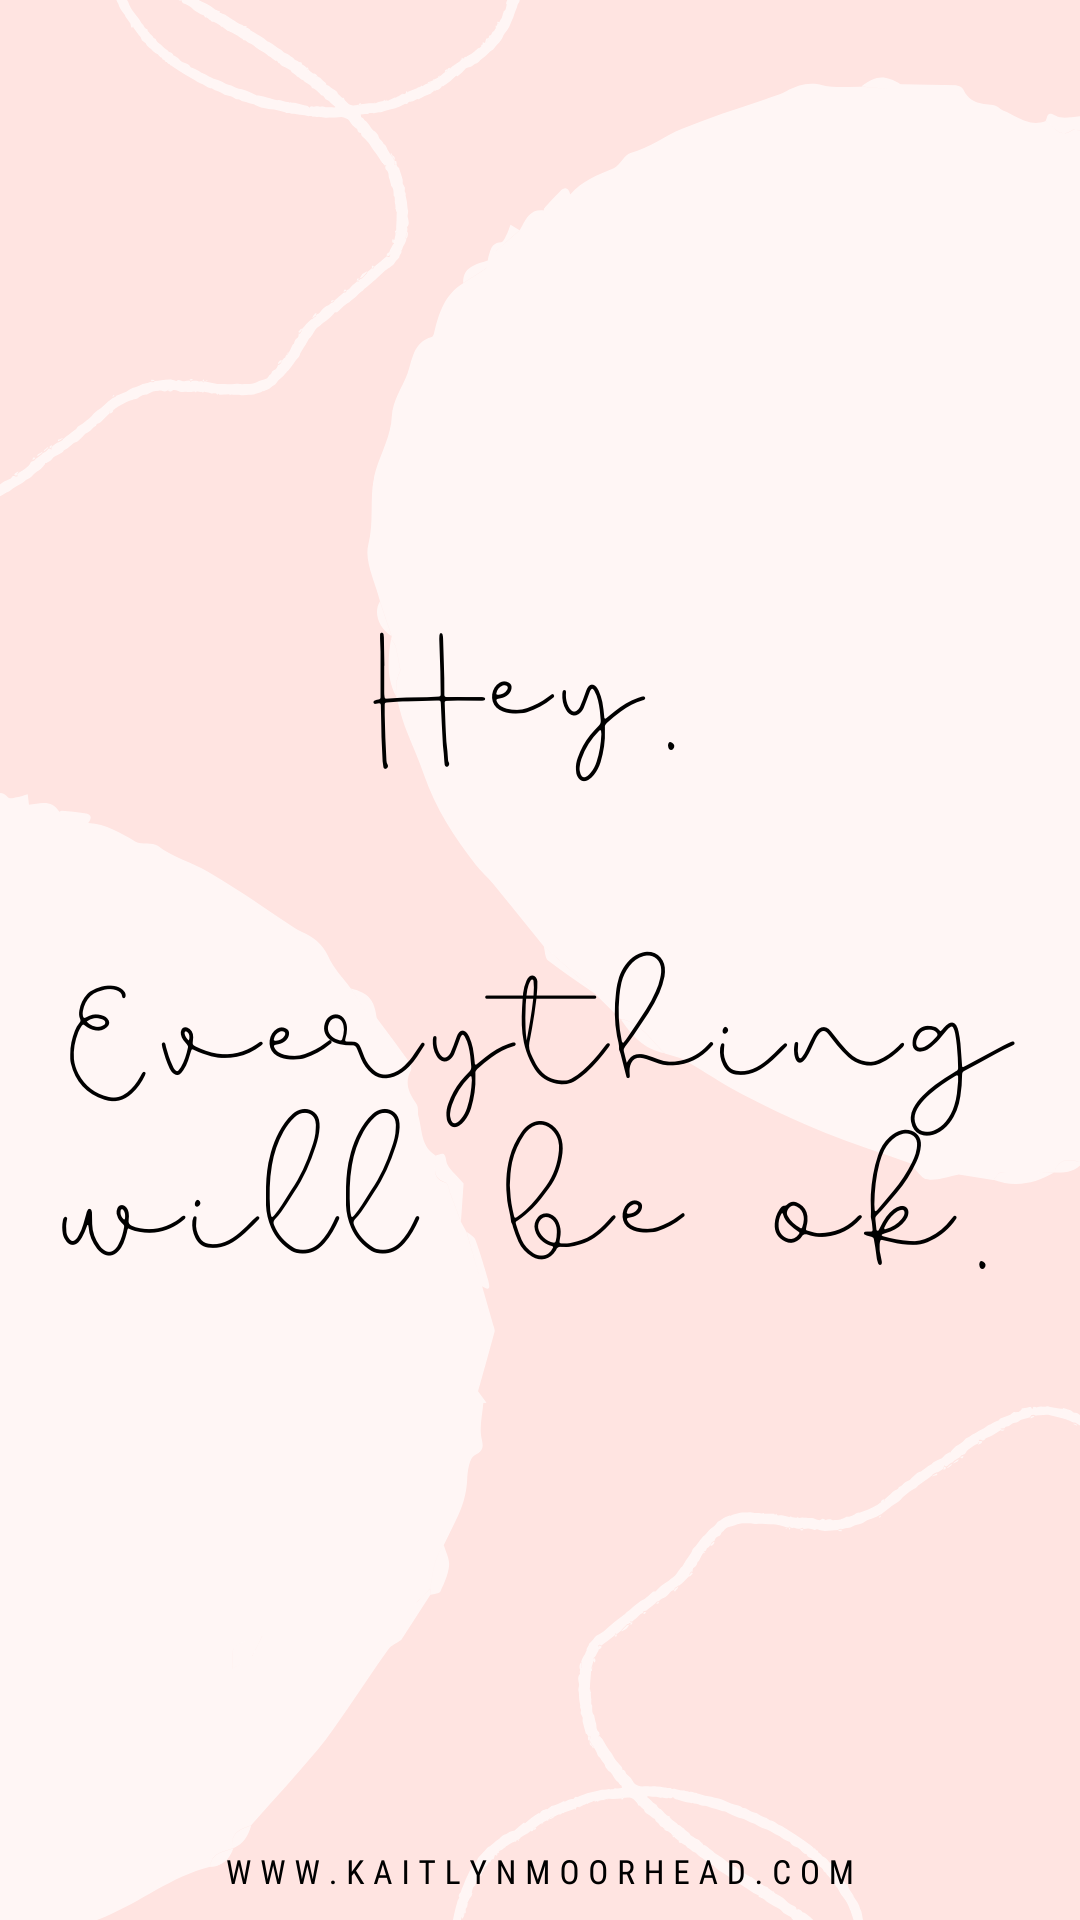 15 Uplifting Quotes to Stay Positive During Hard Times